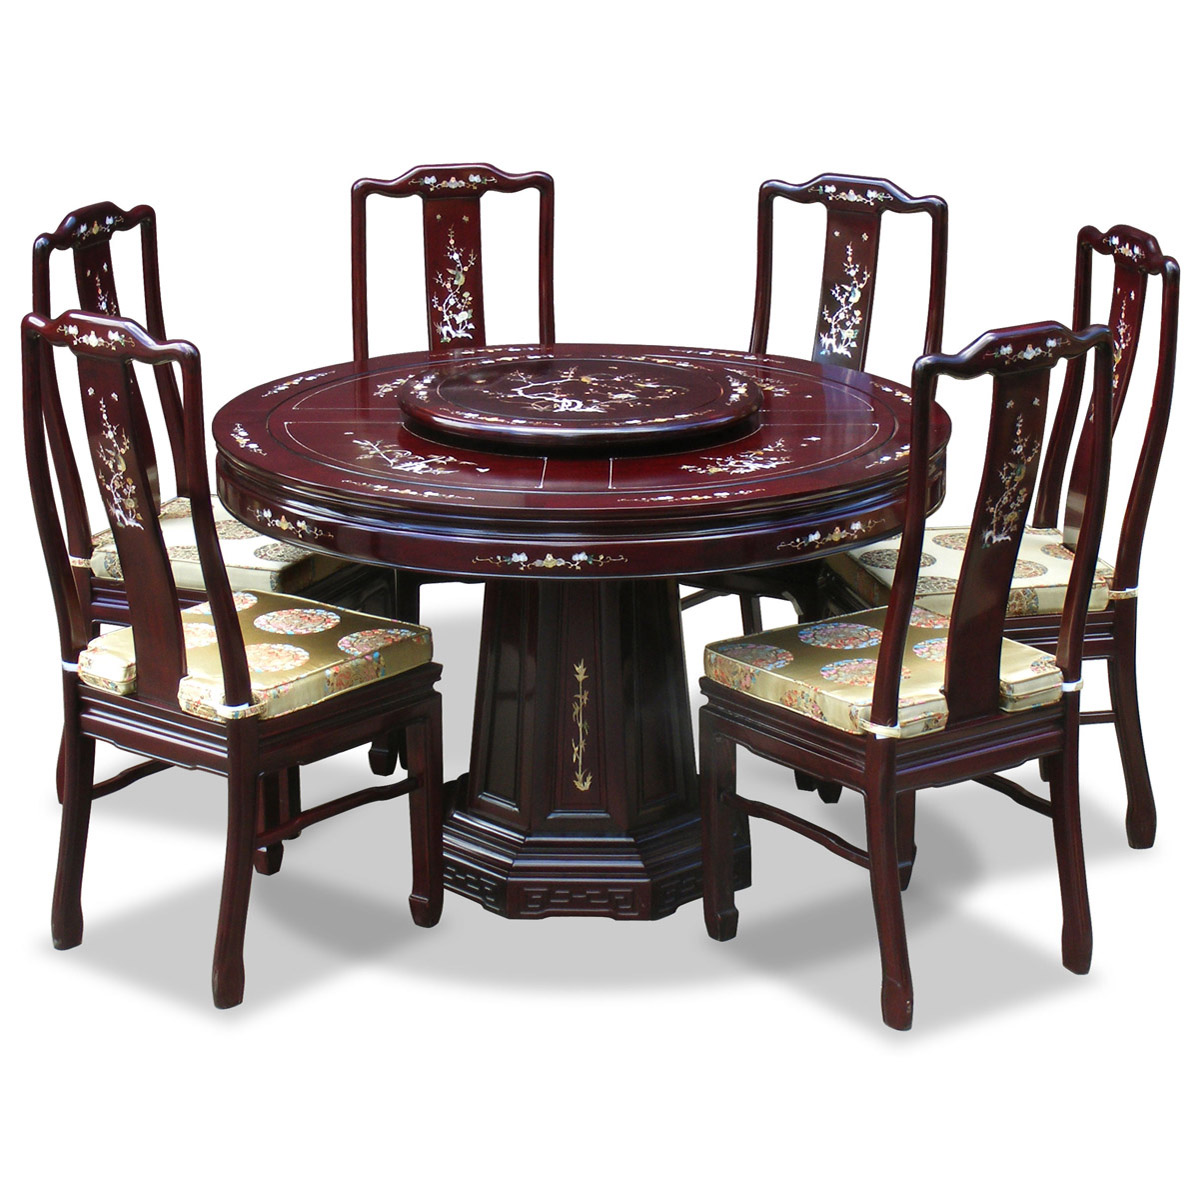 Round Dining Tables For 6